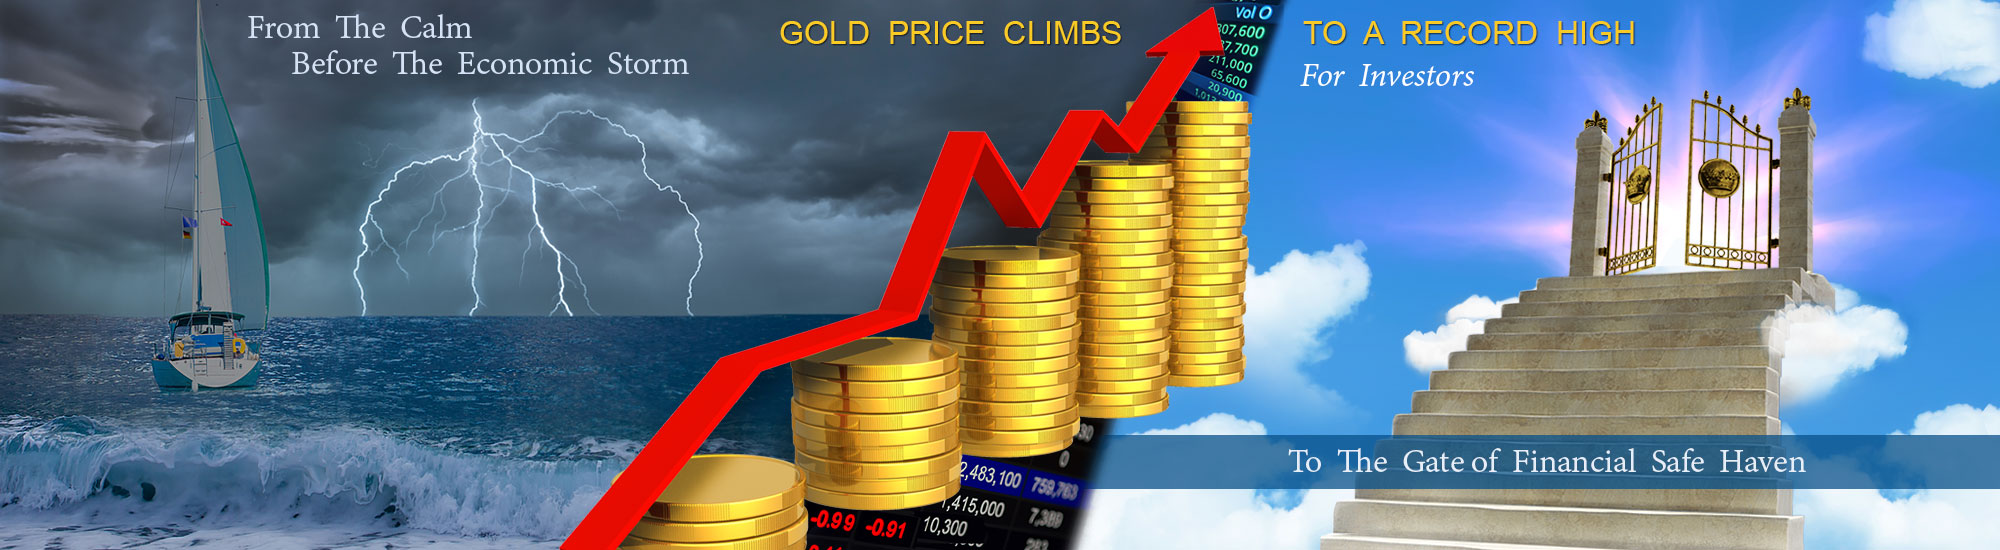 Gold price climbs high for investors